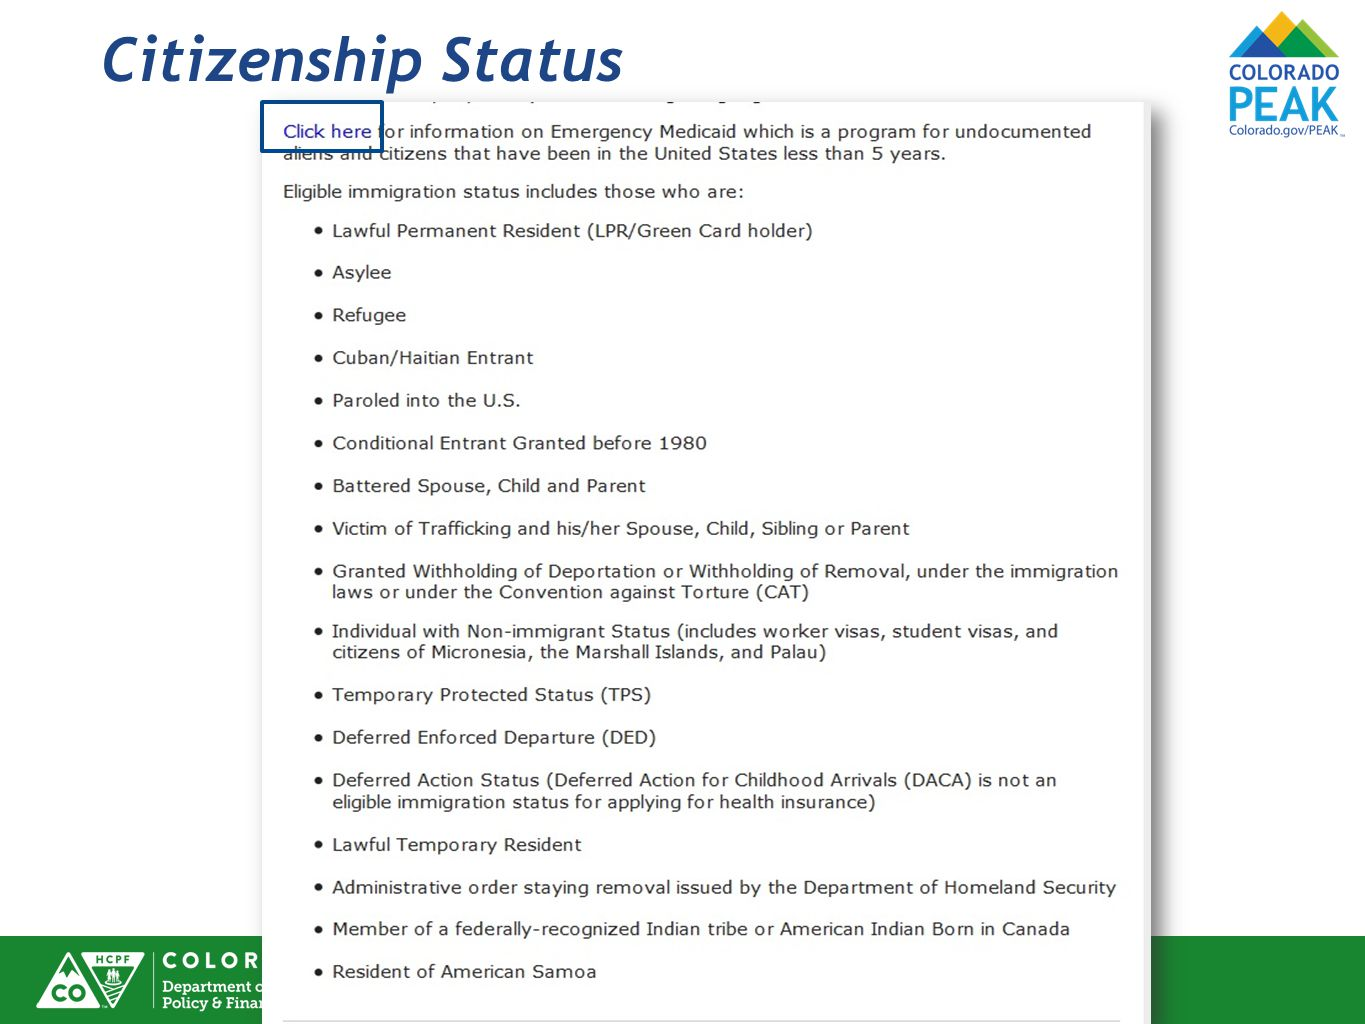 Citizenship Status A list of eligible immigration statuses displays.